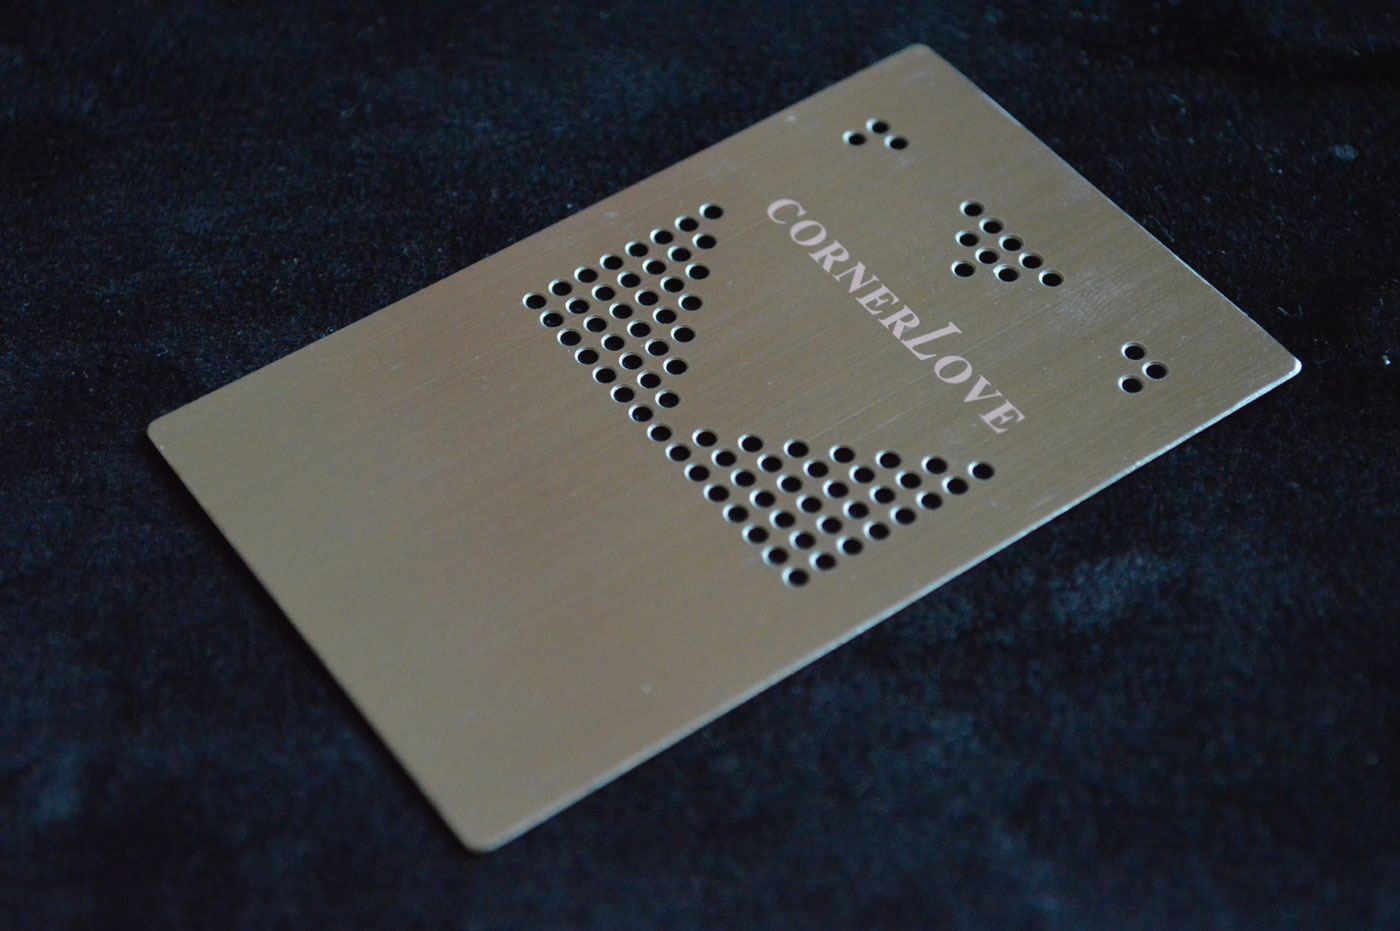 Metal business cards vip membership cards for Business cards metal